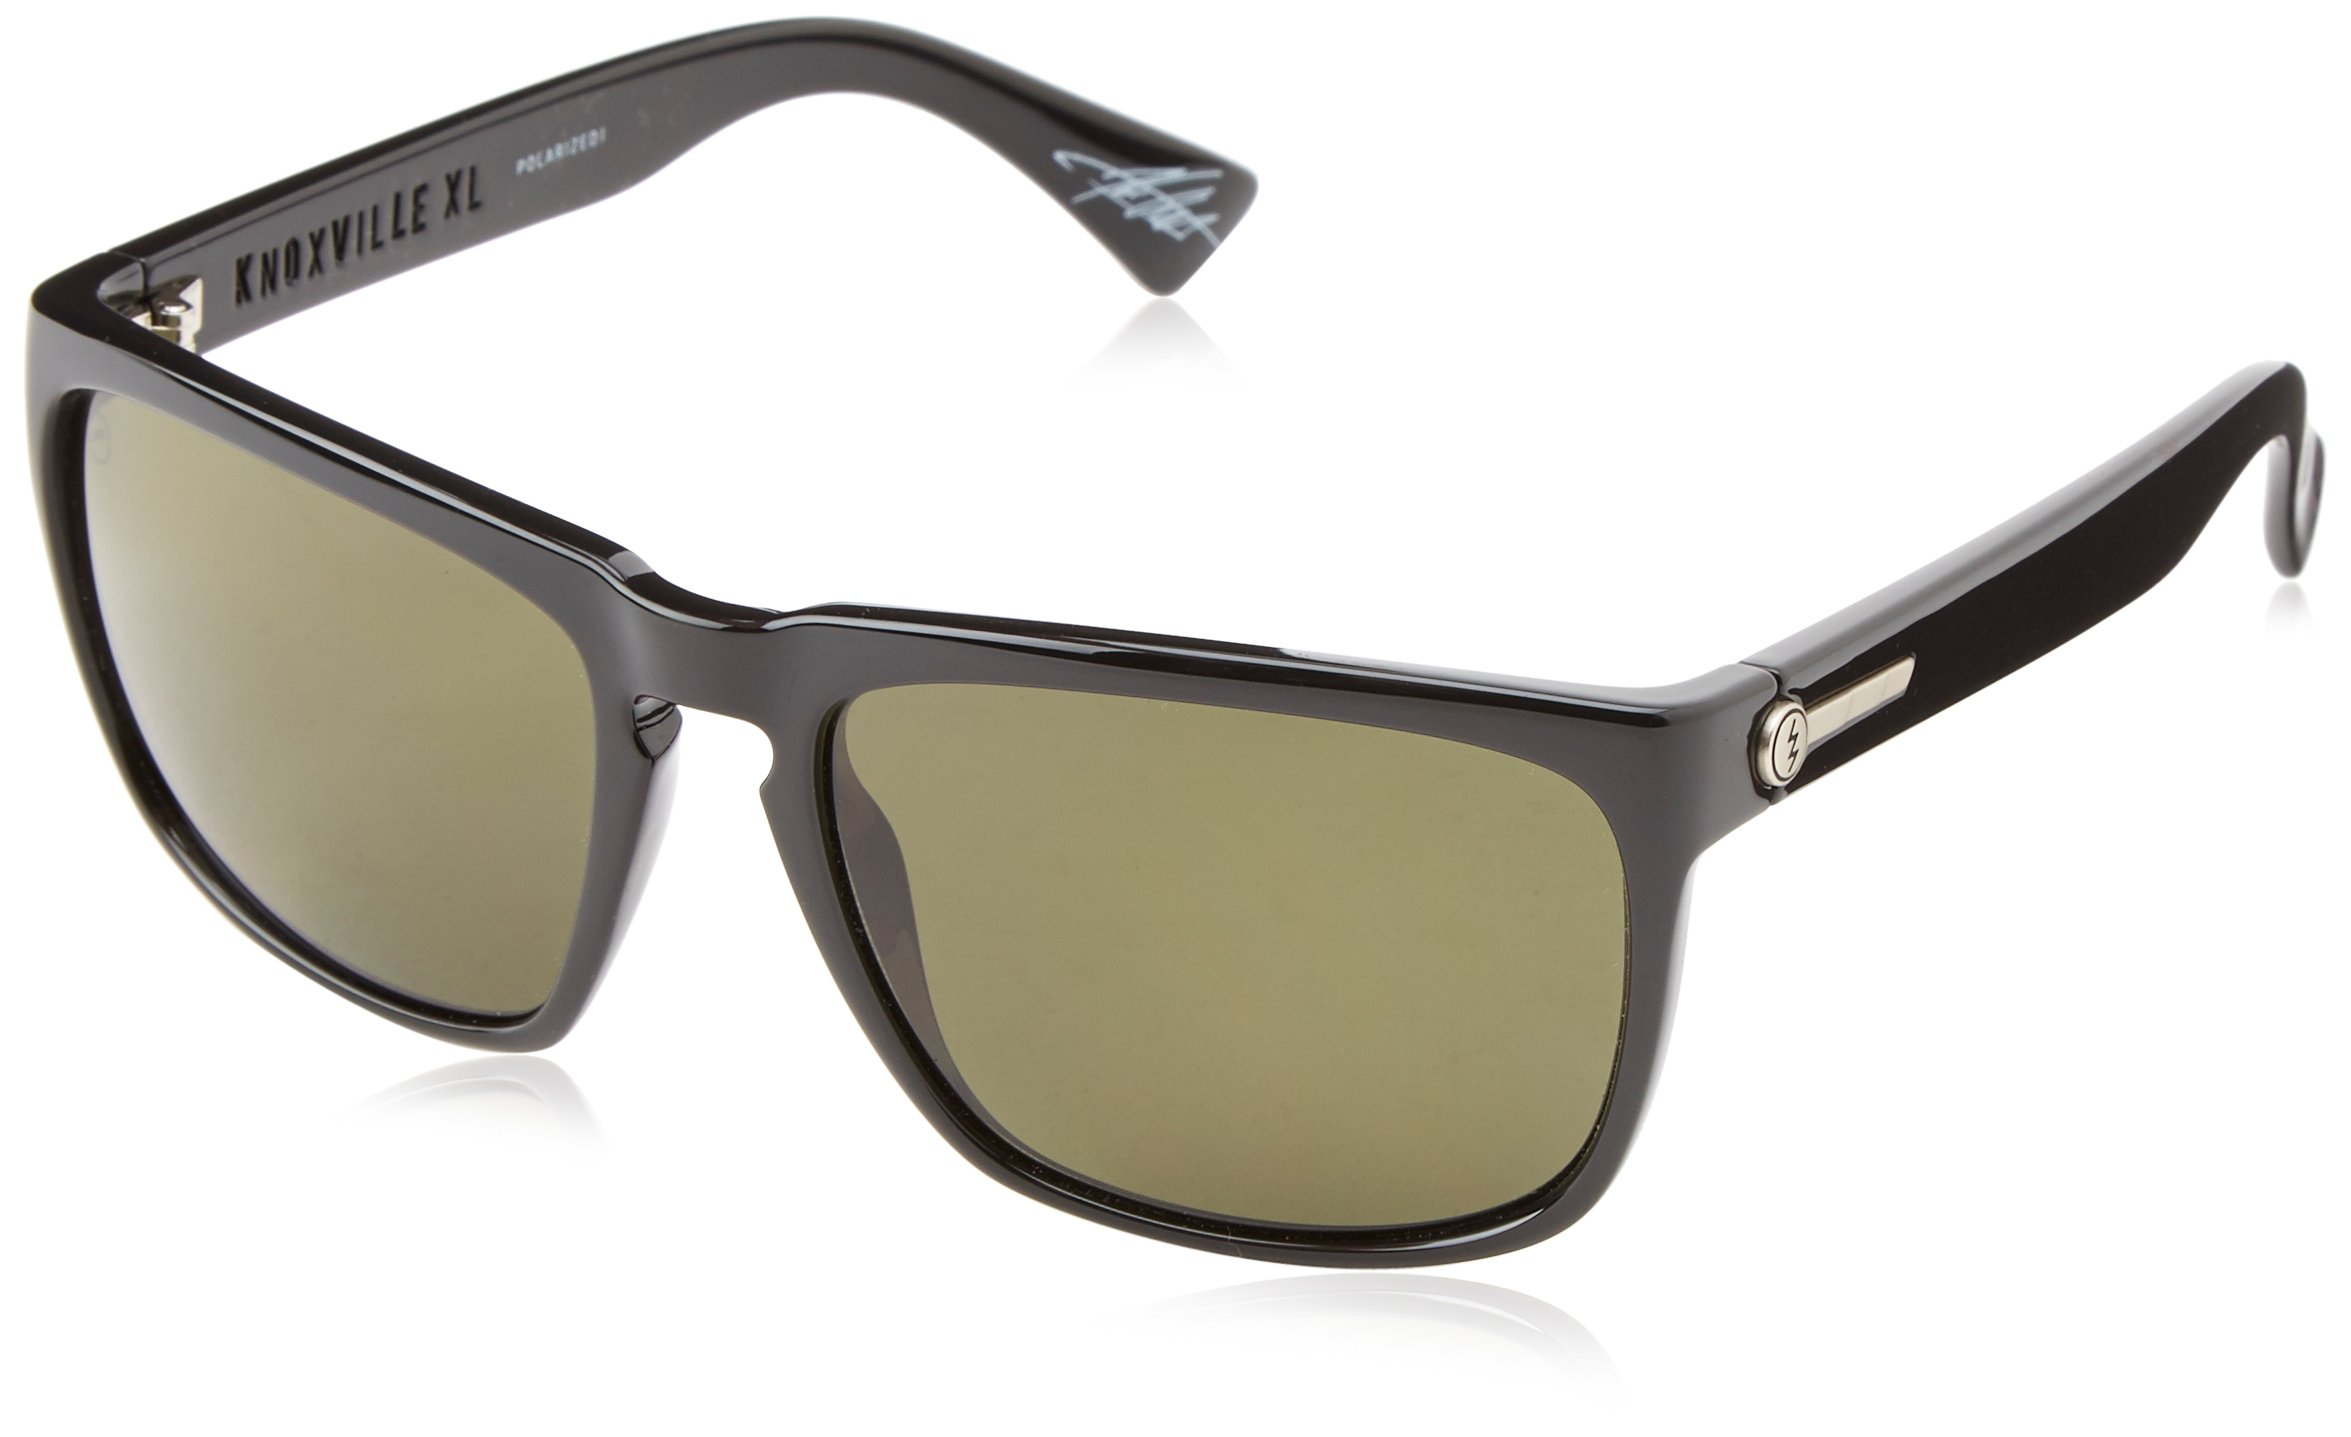 461d501377 Electric Visual Knoxville XL Gloss Black OHM Polarized Grey Sunglasses